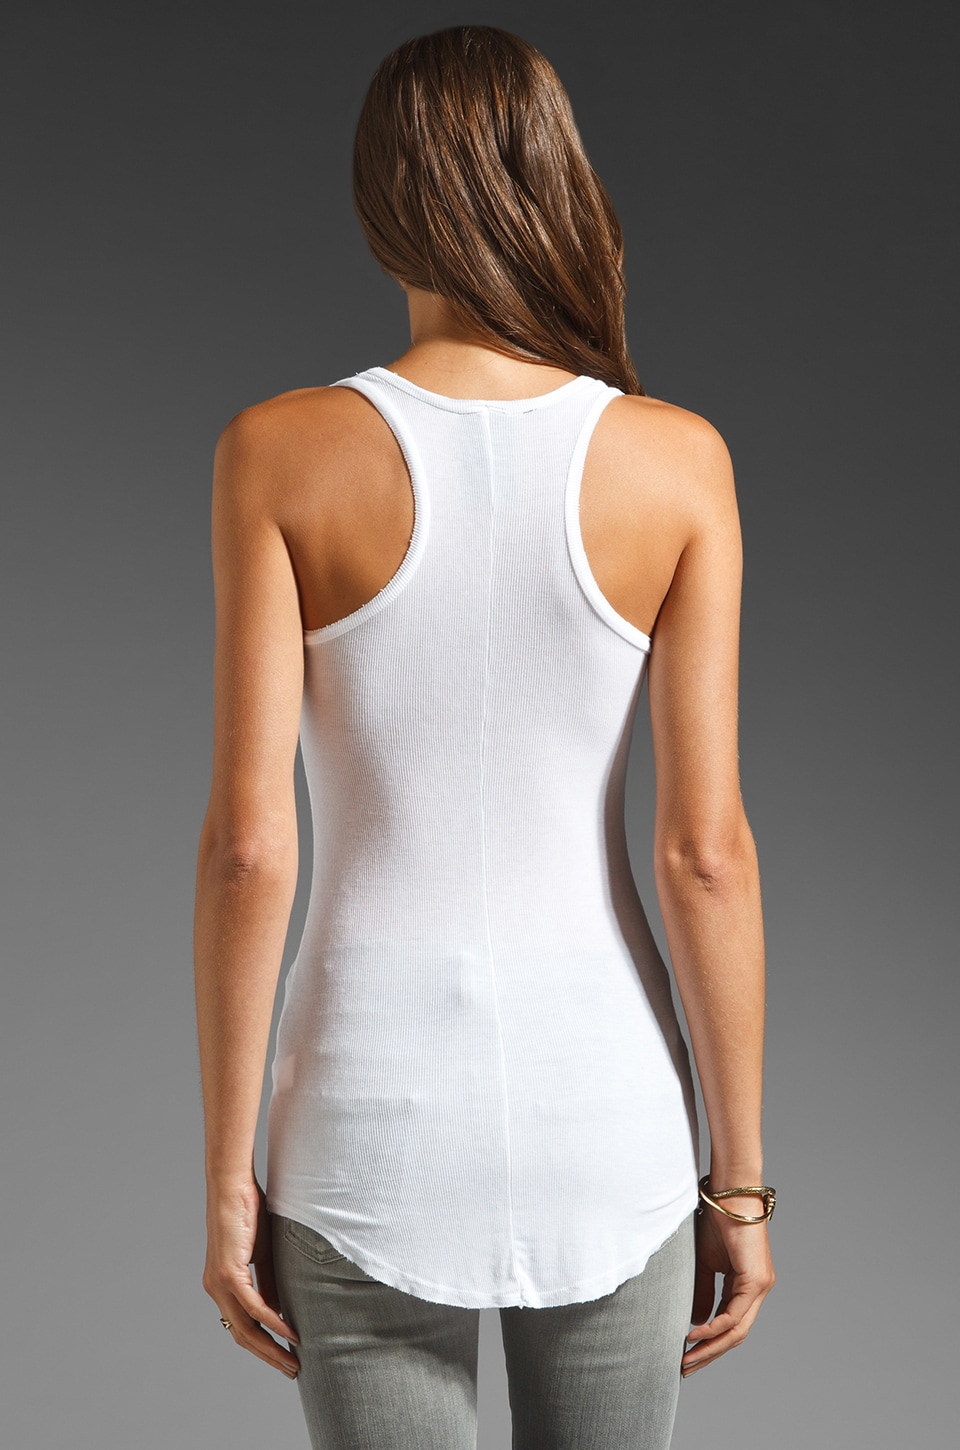 dolan Basic Tank in White